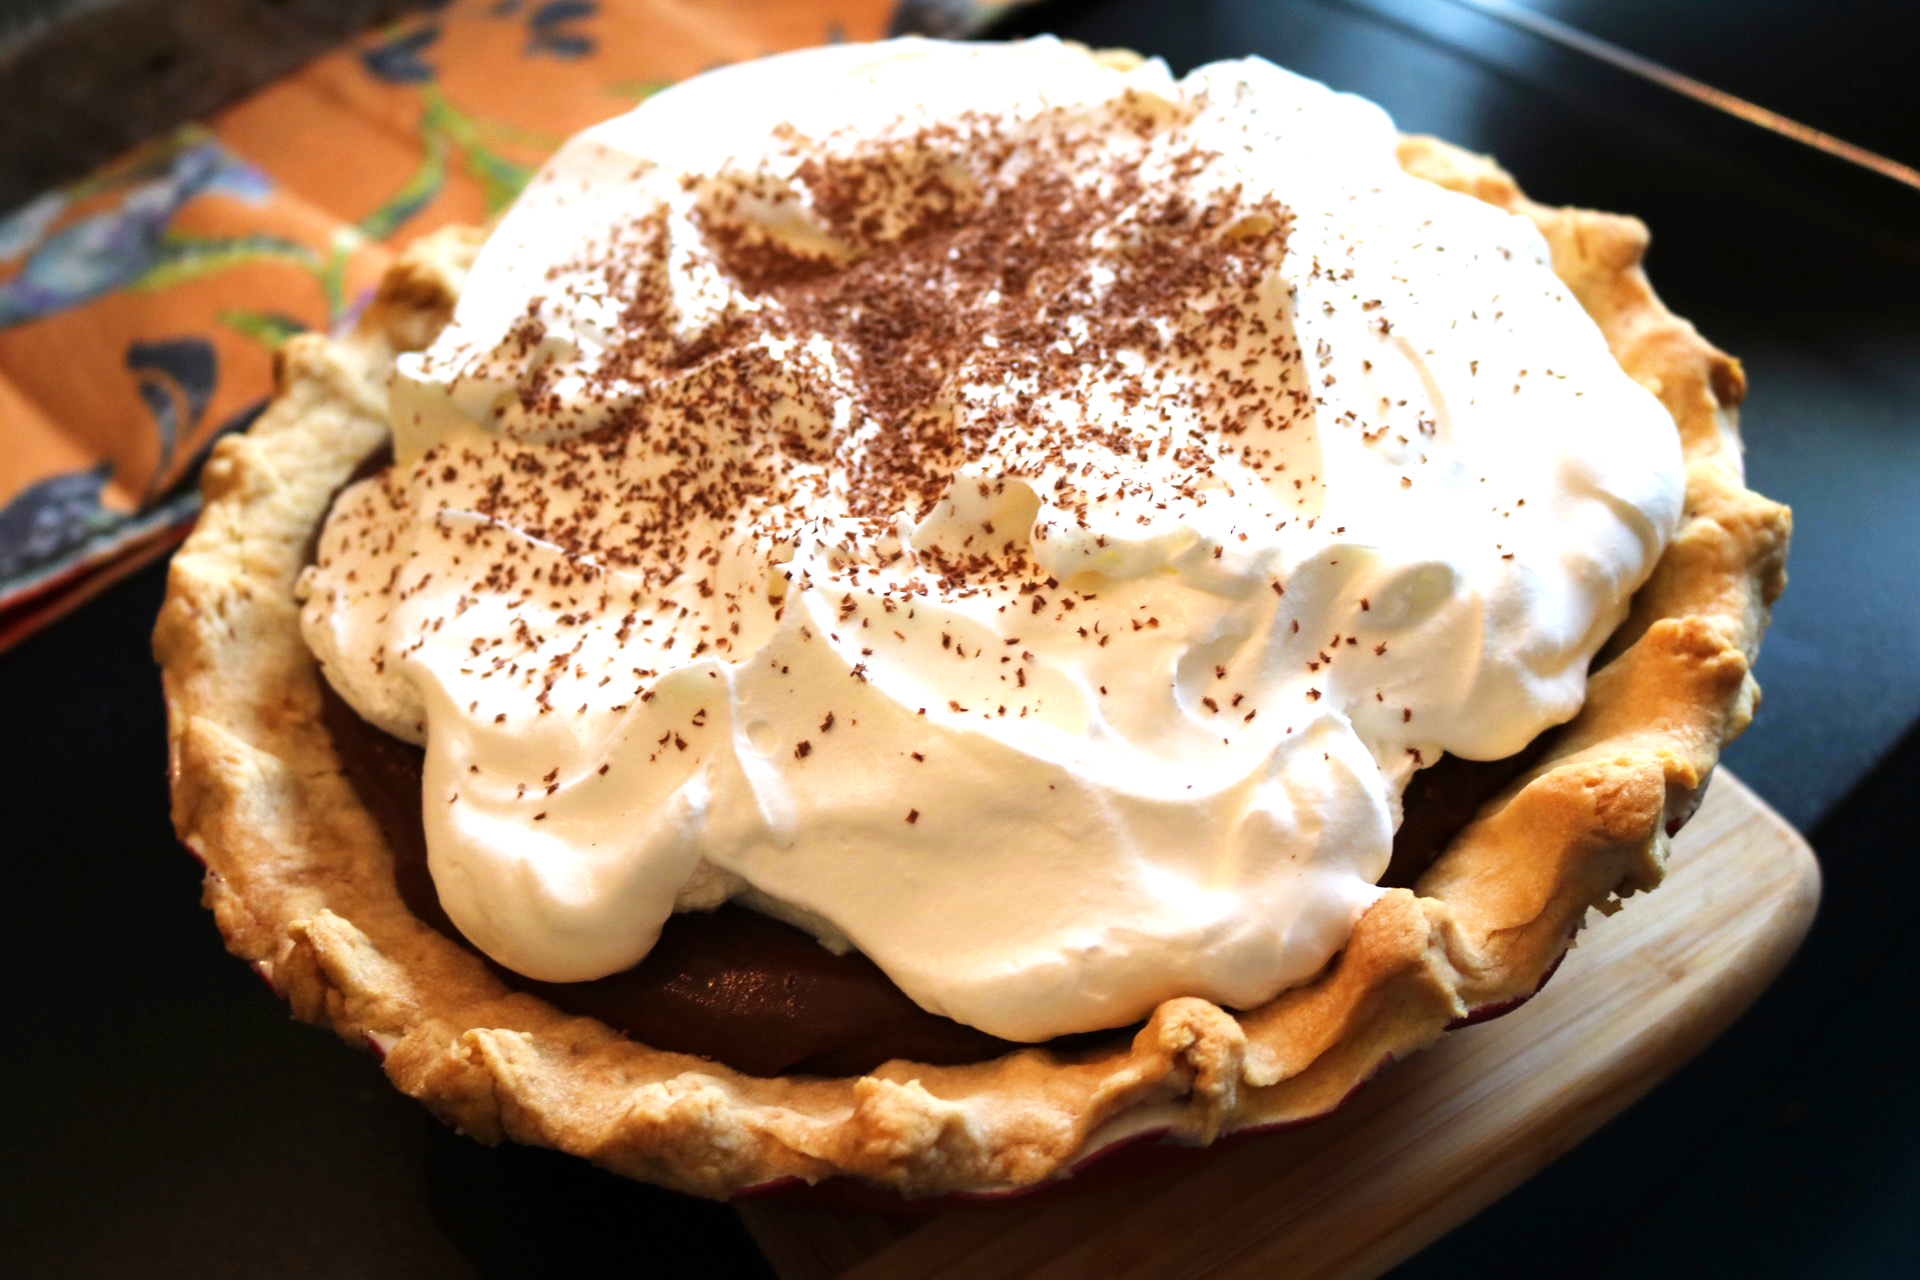 choc pie whip